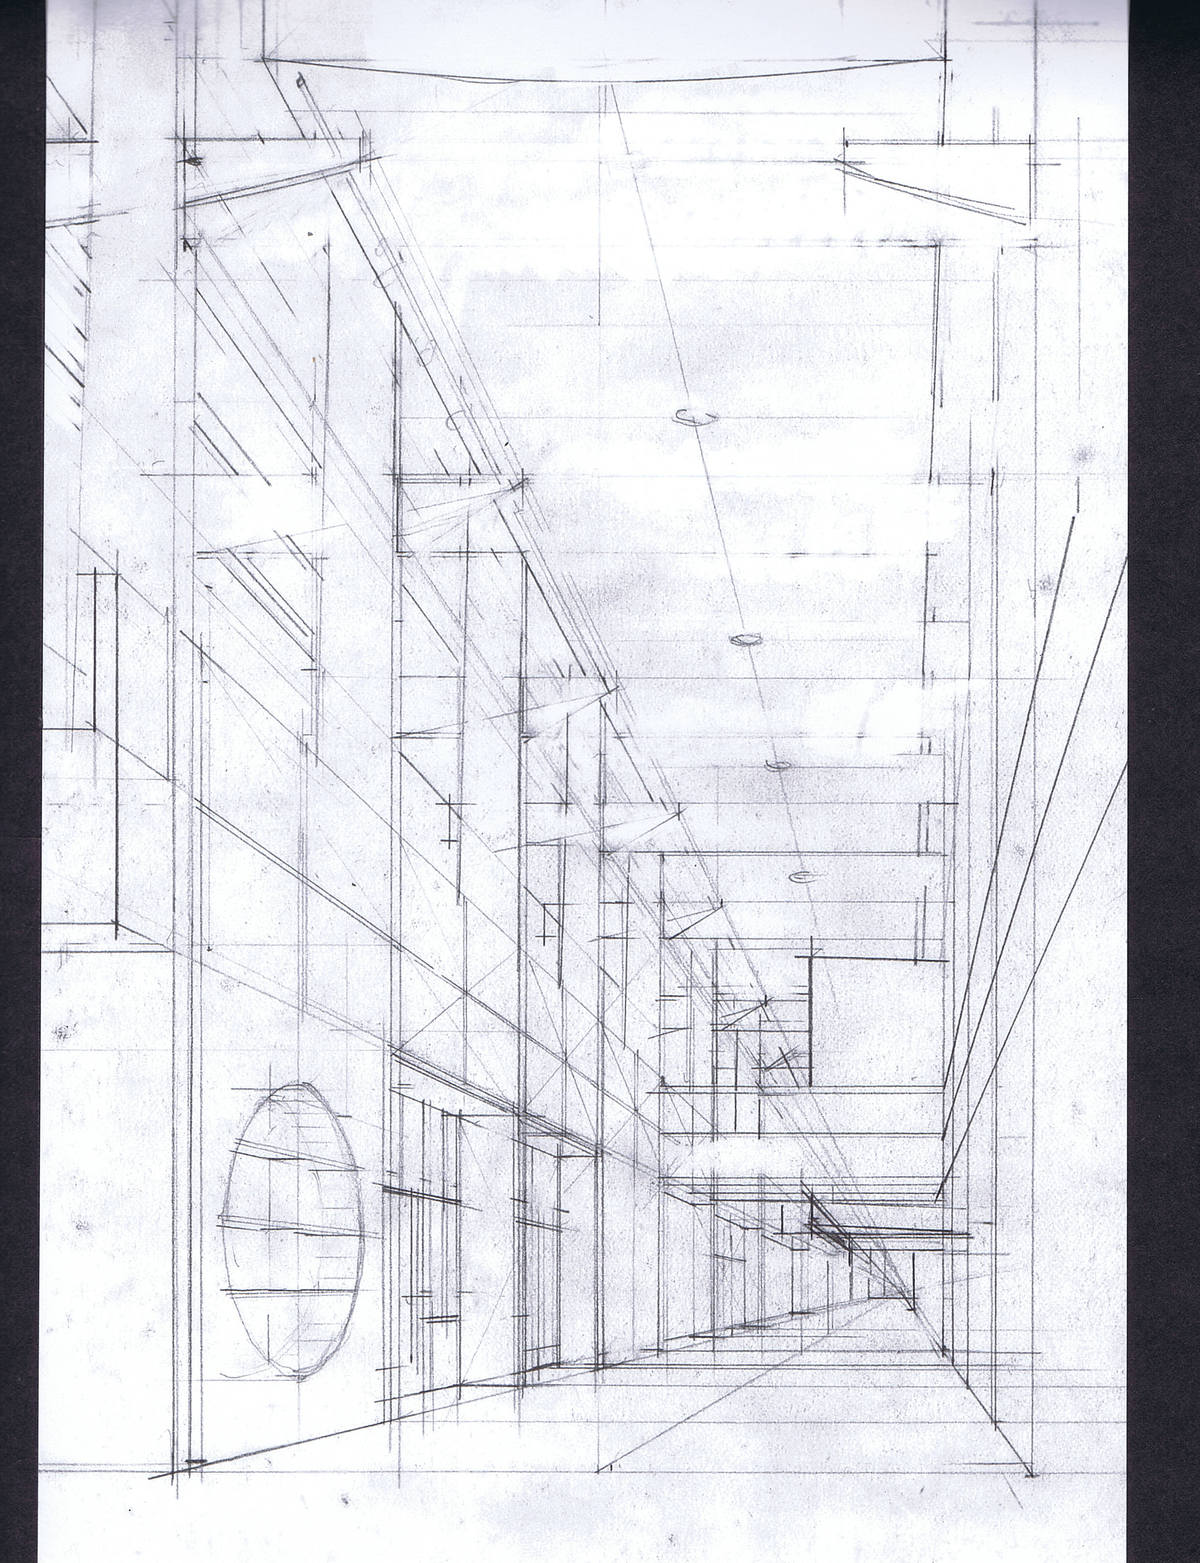 Perspective sketch of an interior